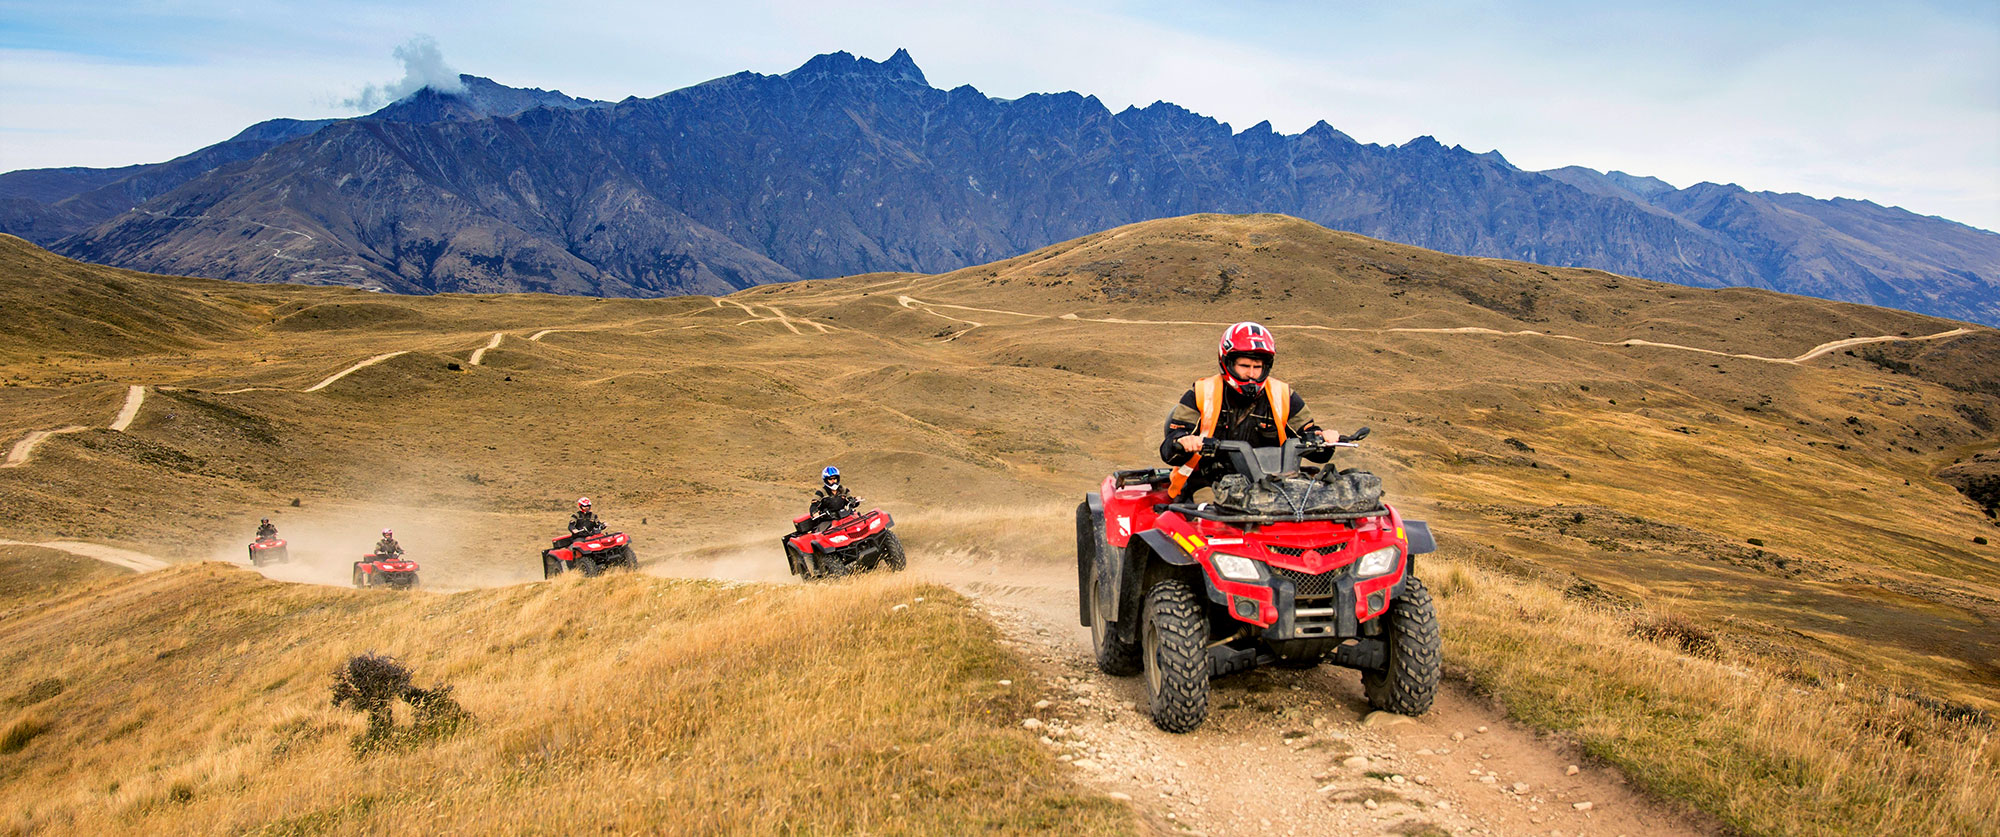 New Zealand Vacations - Nomad Safaris